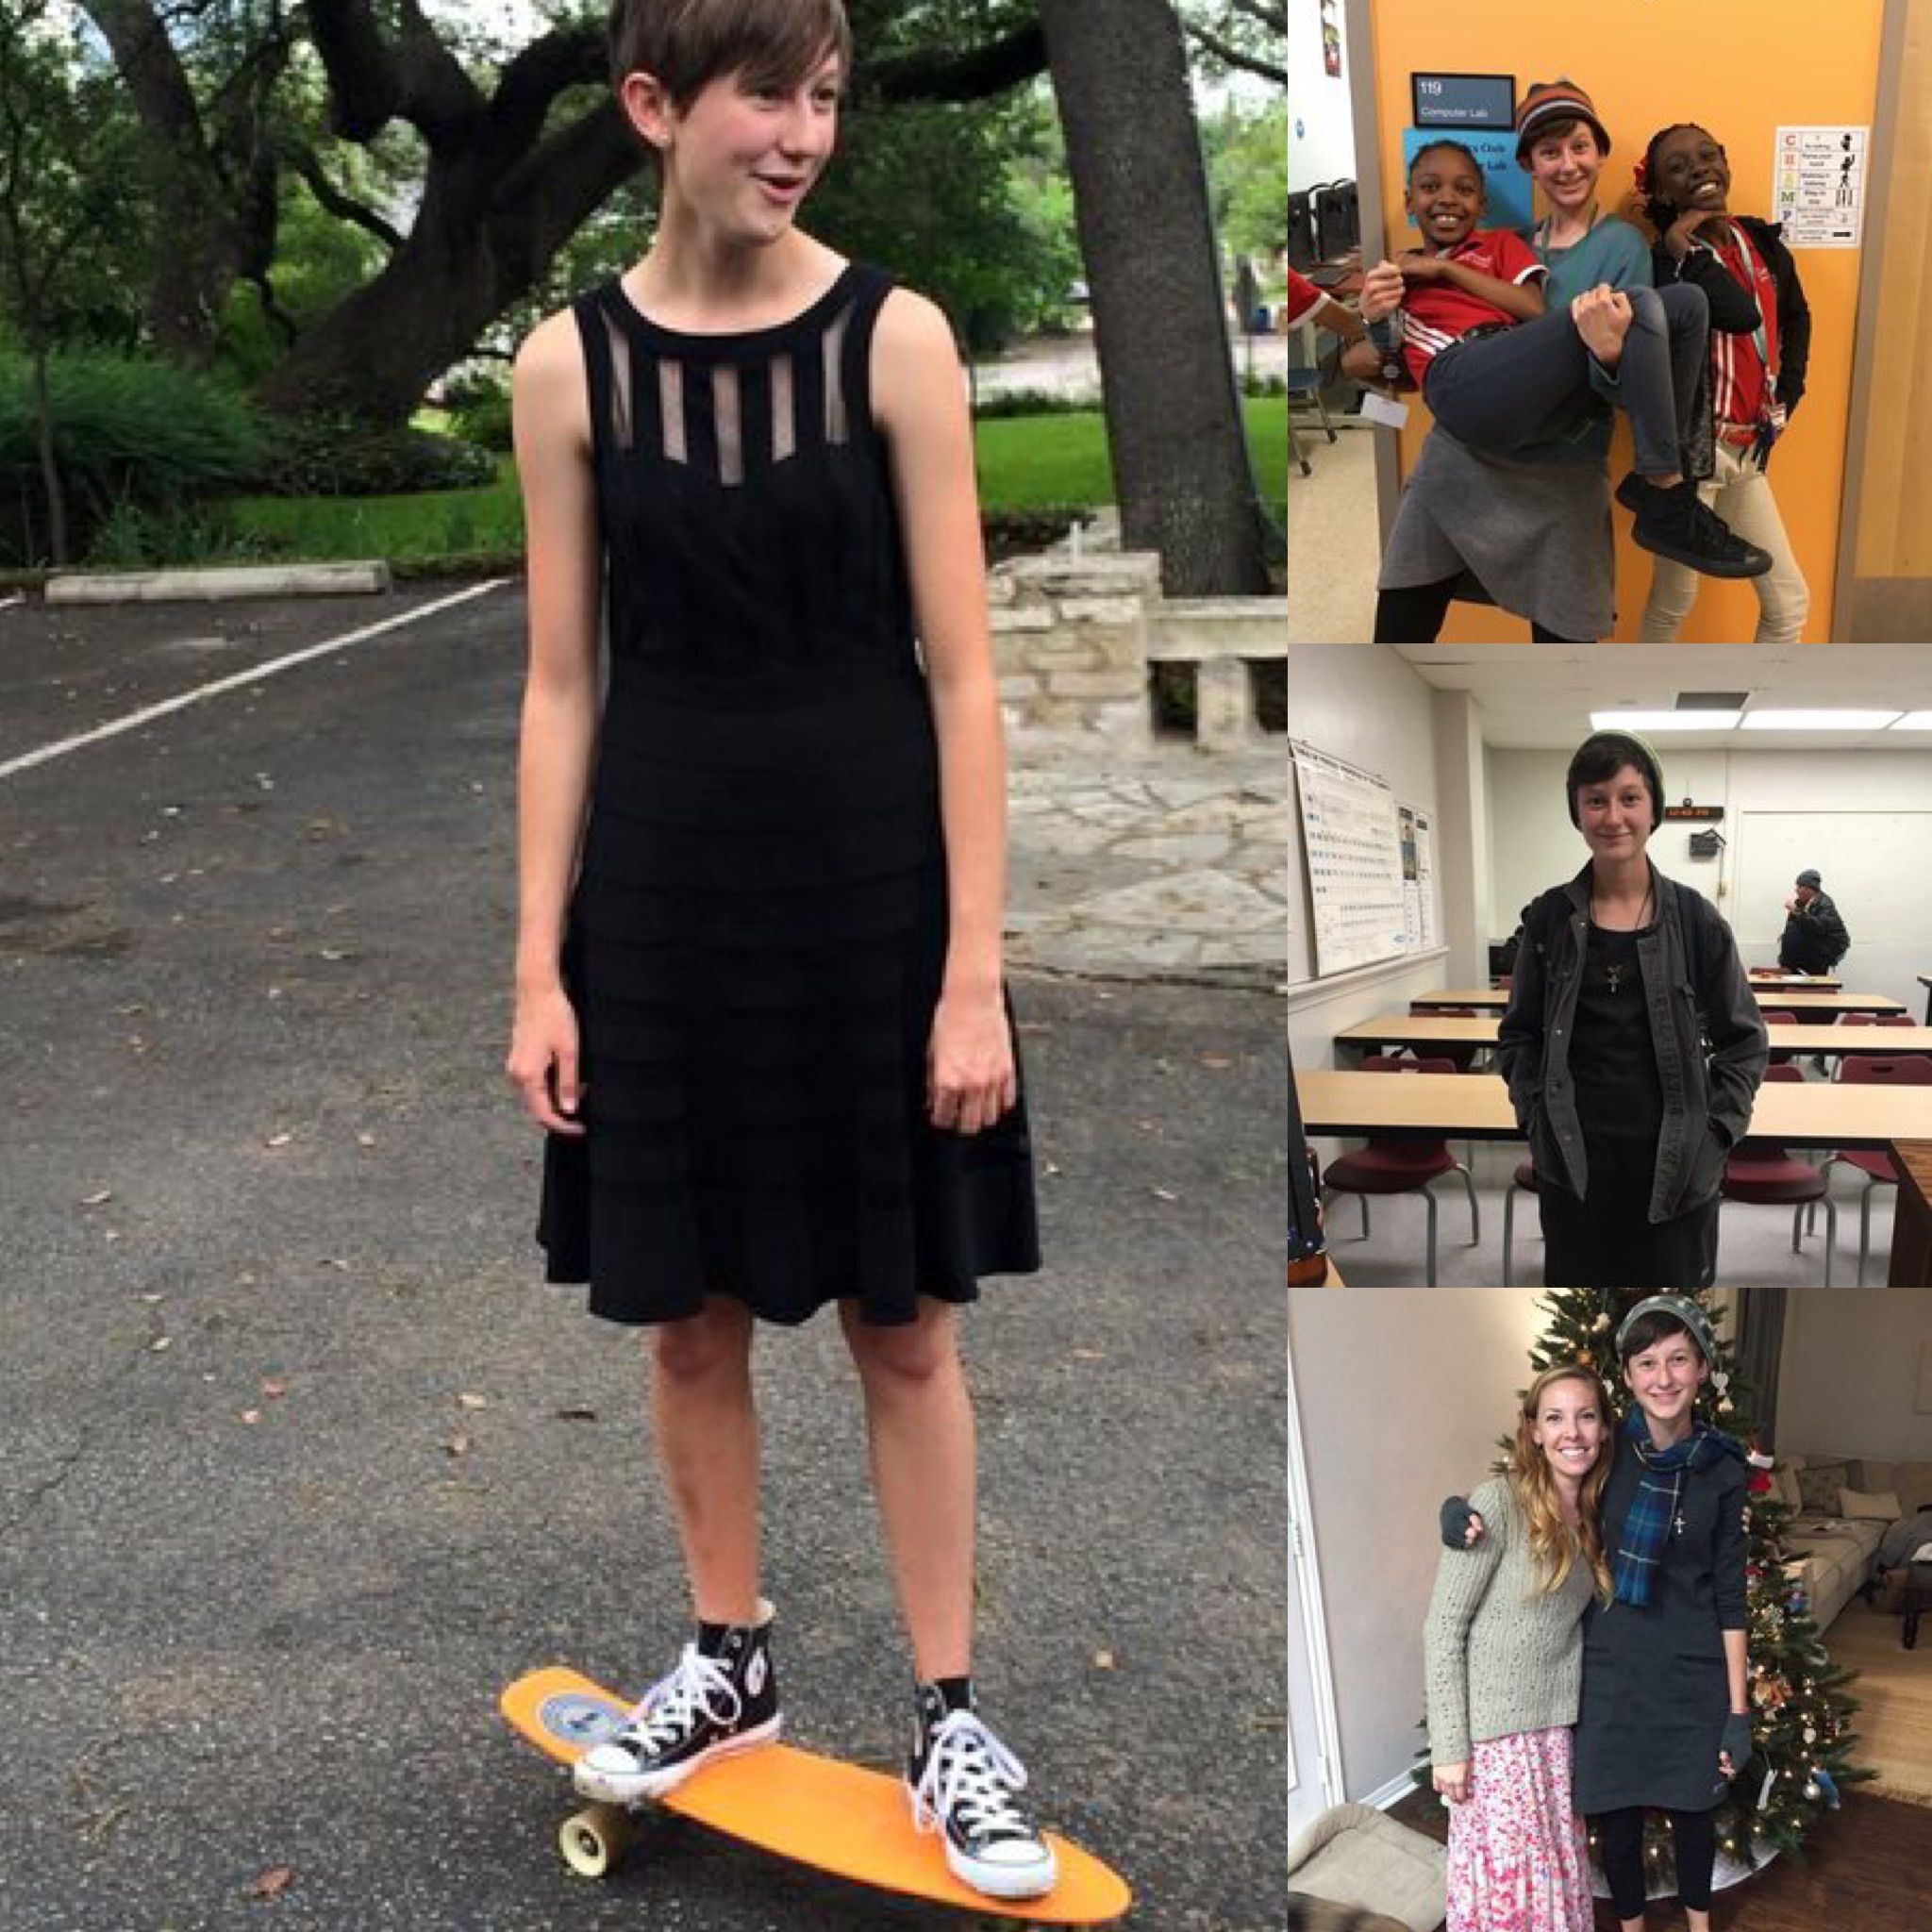 Dressember advocate, Maddie Hilgers, rocked only two dresses for Dressember 2016 campaign.